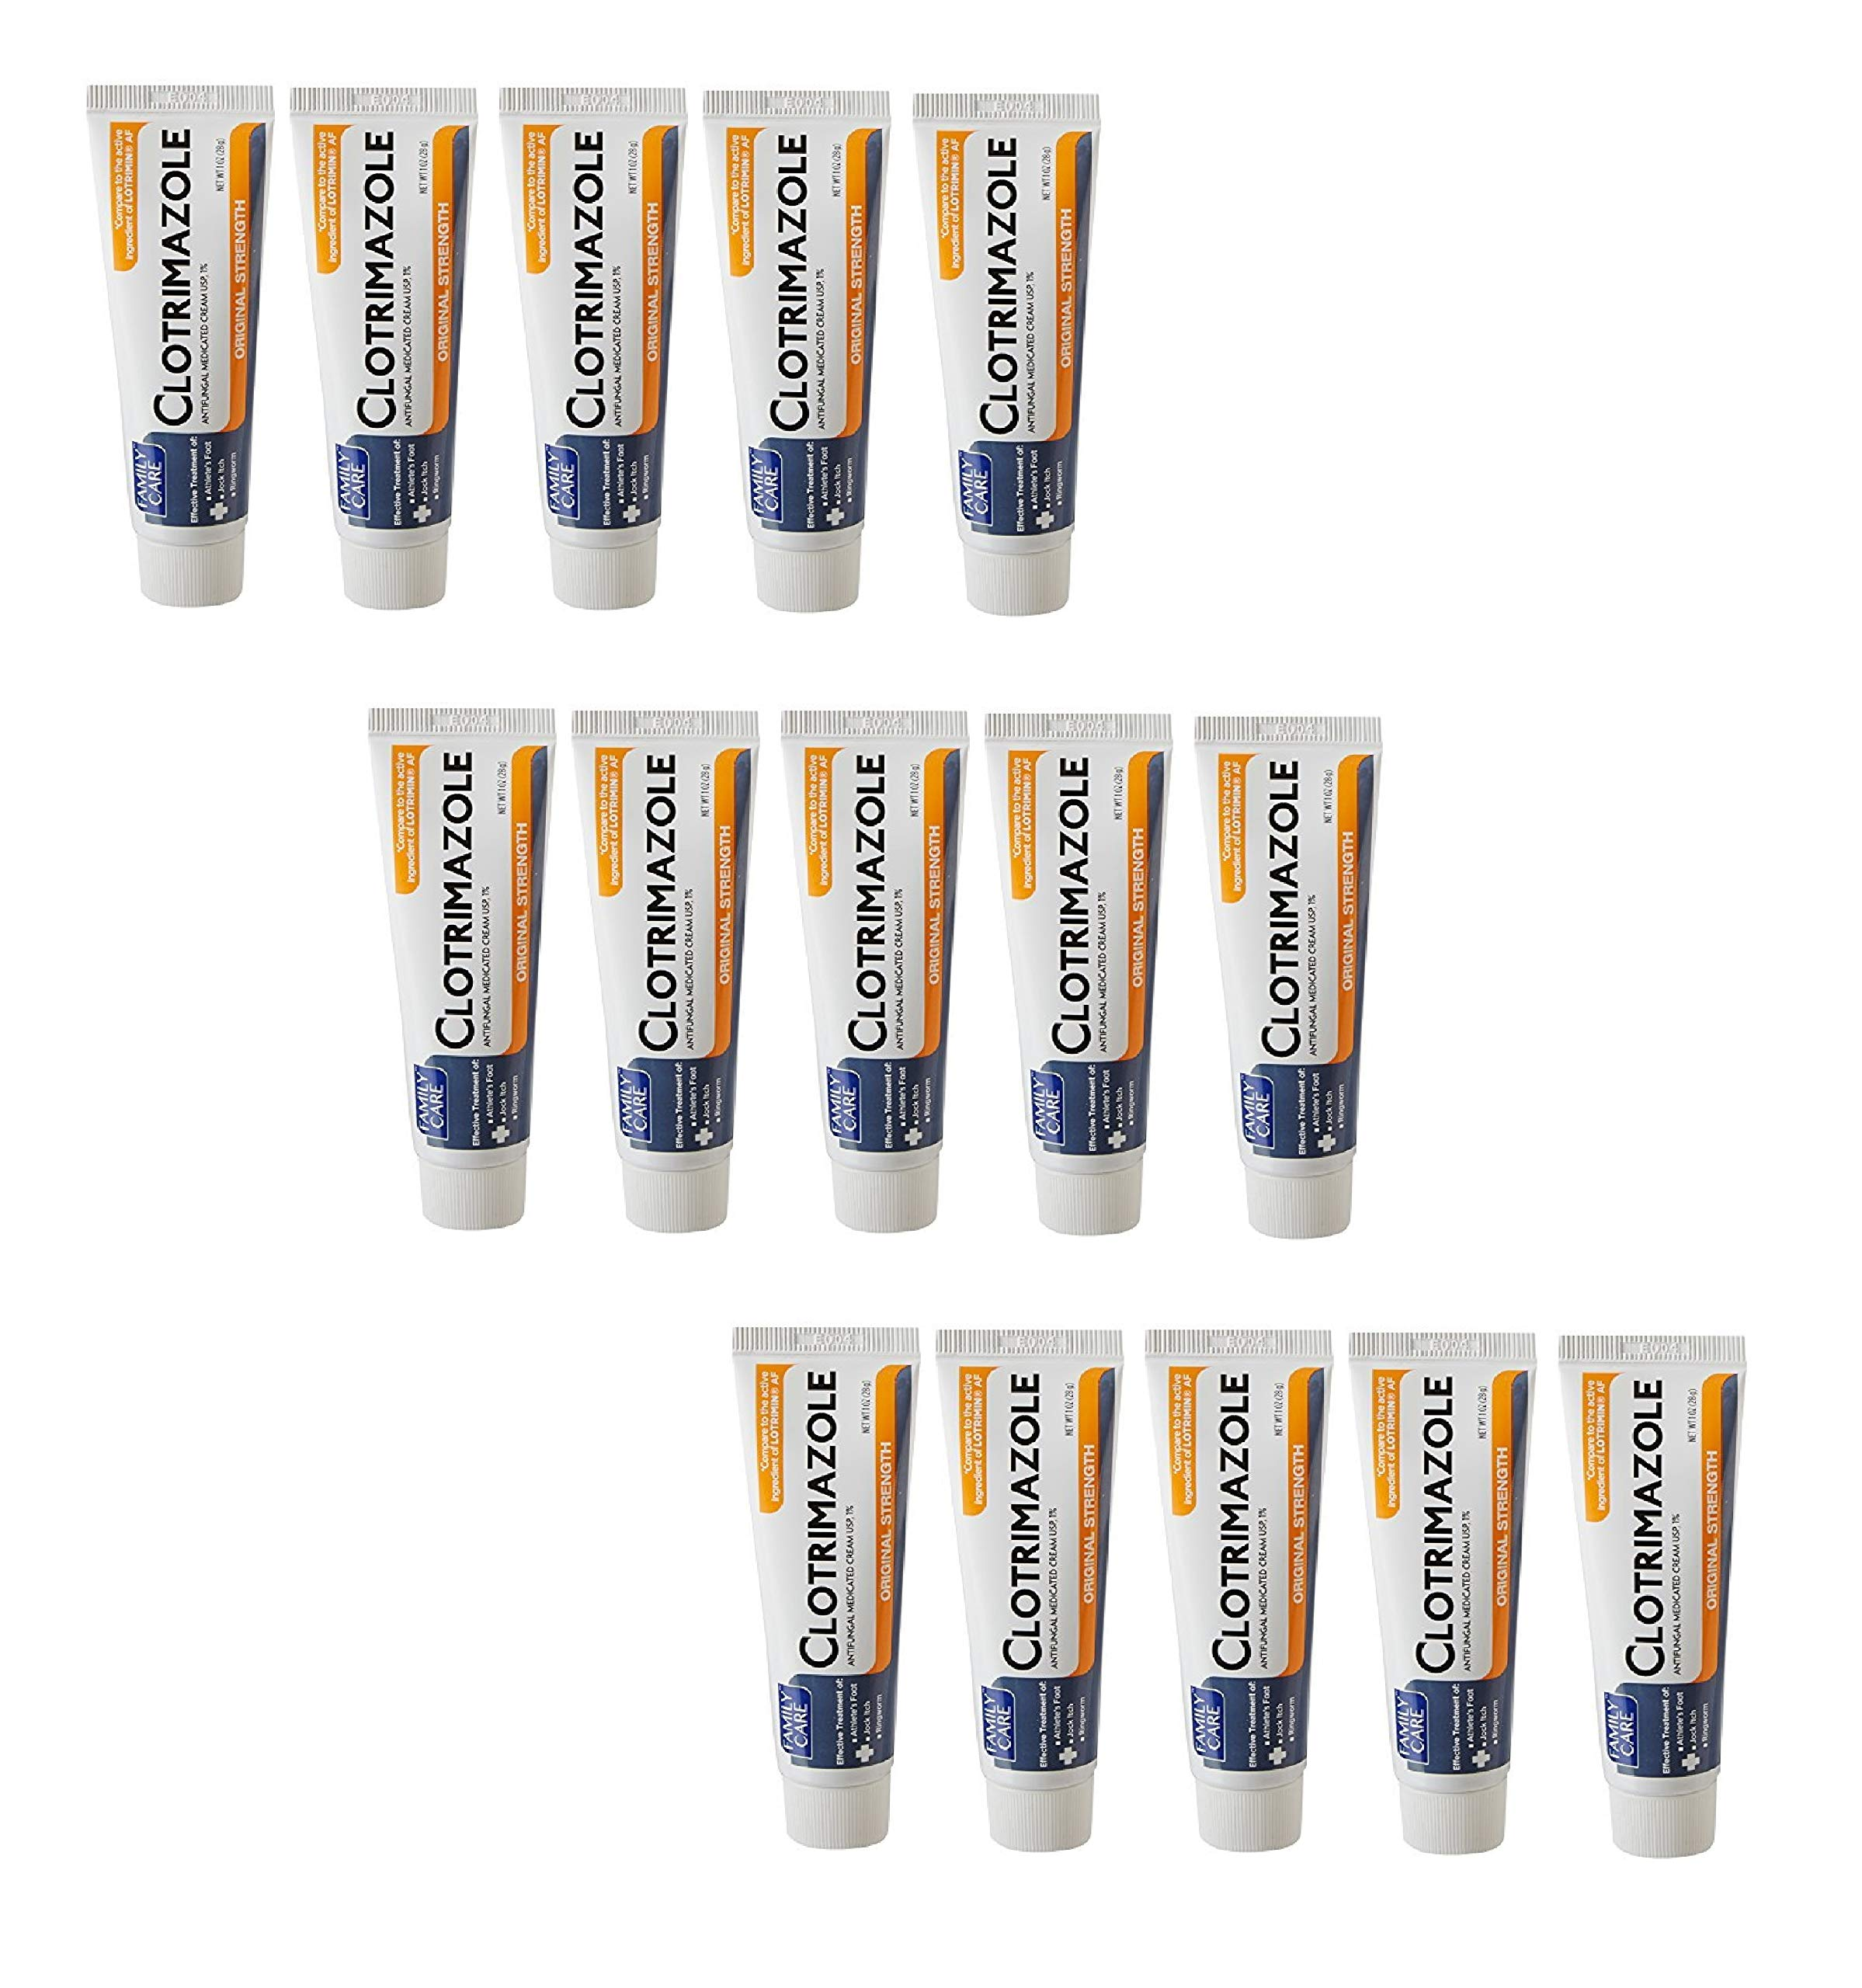 Family Care Clotrimazole Anti Fungal Cream, 1% USP Compare to Lotrimin 1oz LFRczv, 5 Count (3 Pack)